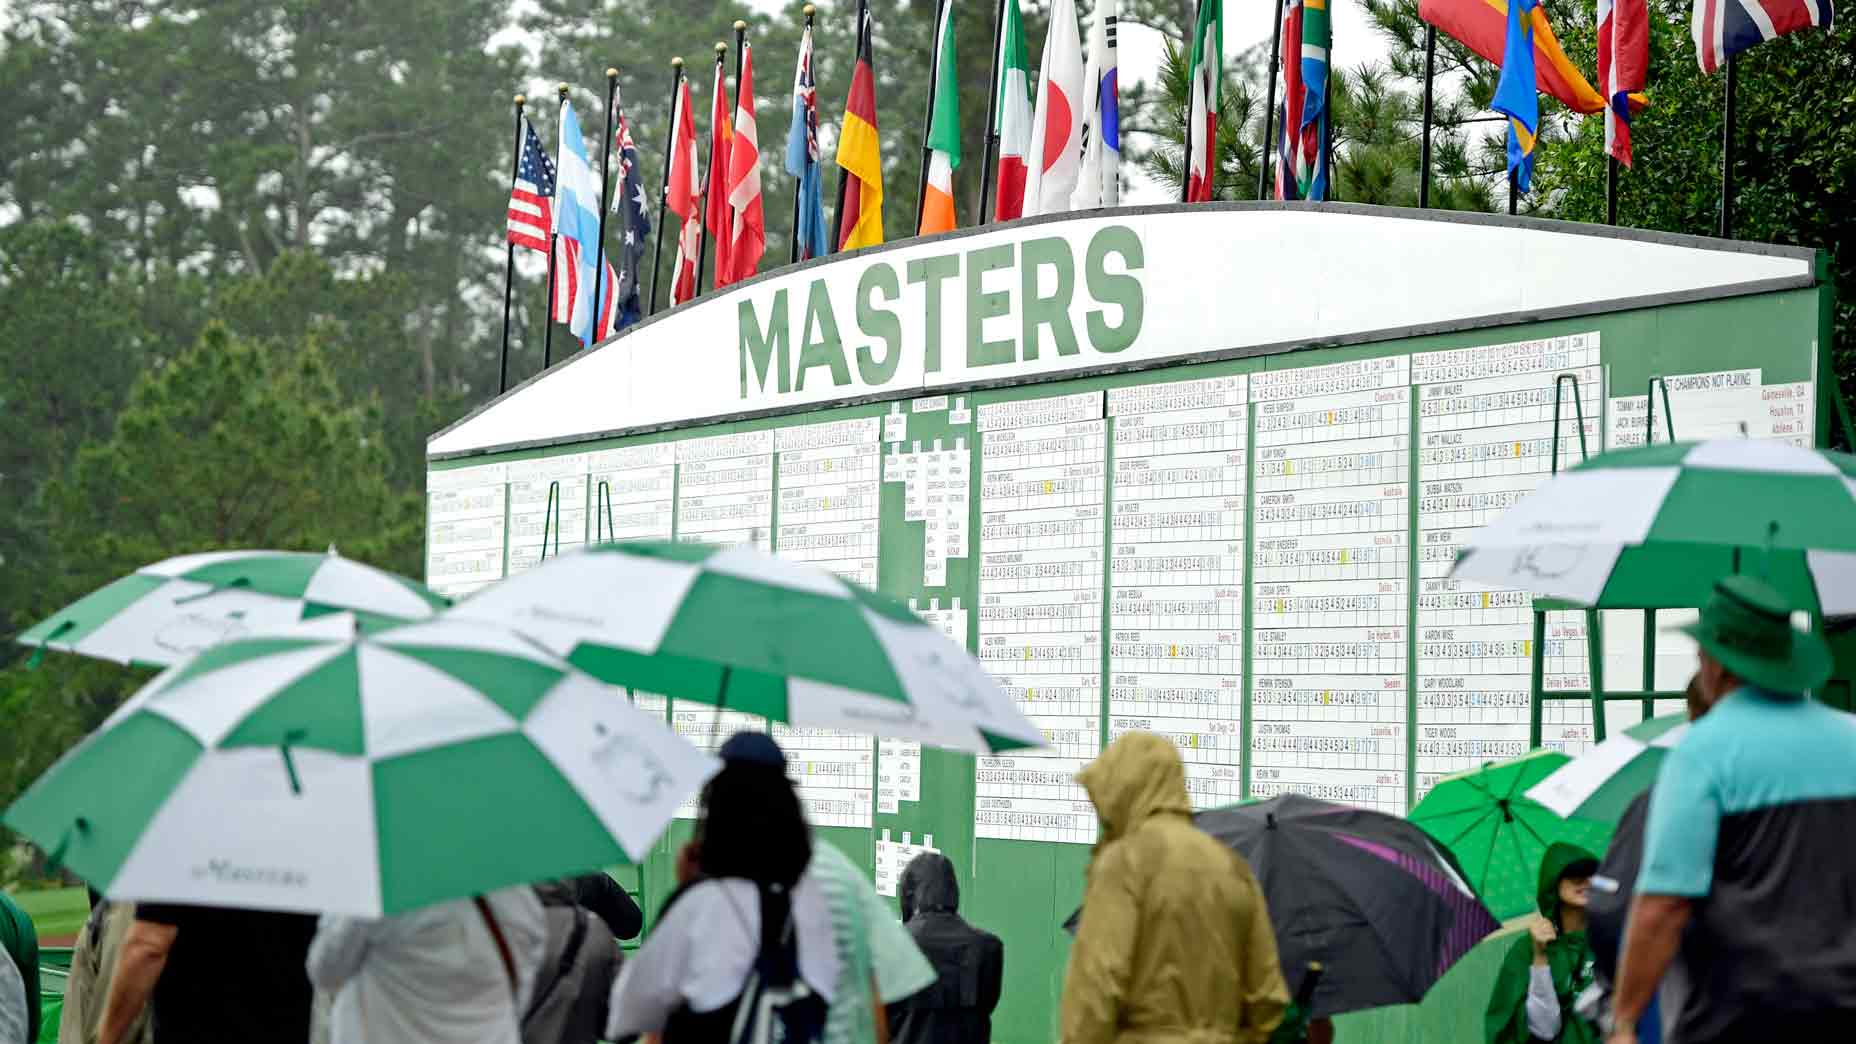 Masters weather forecast for Saturday